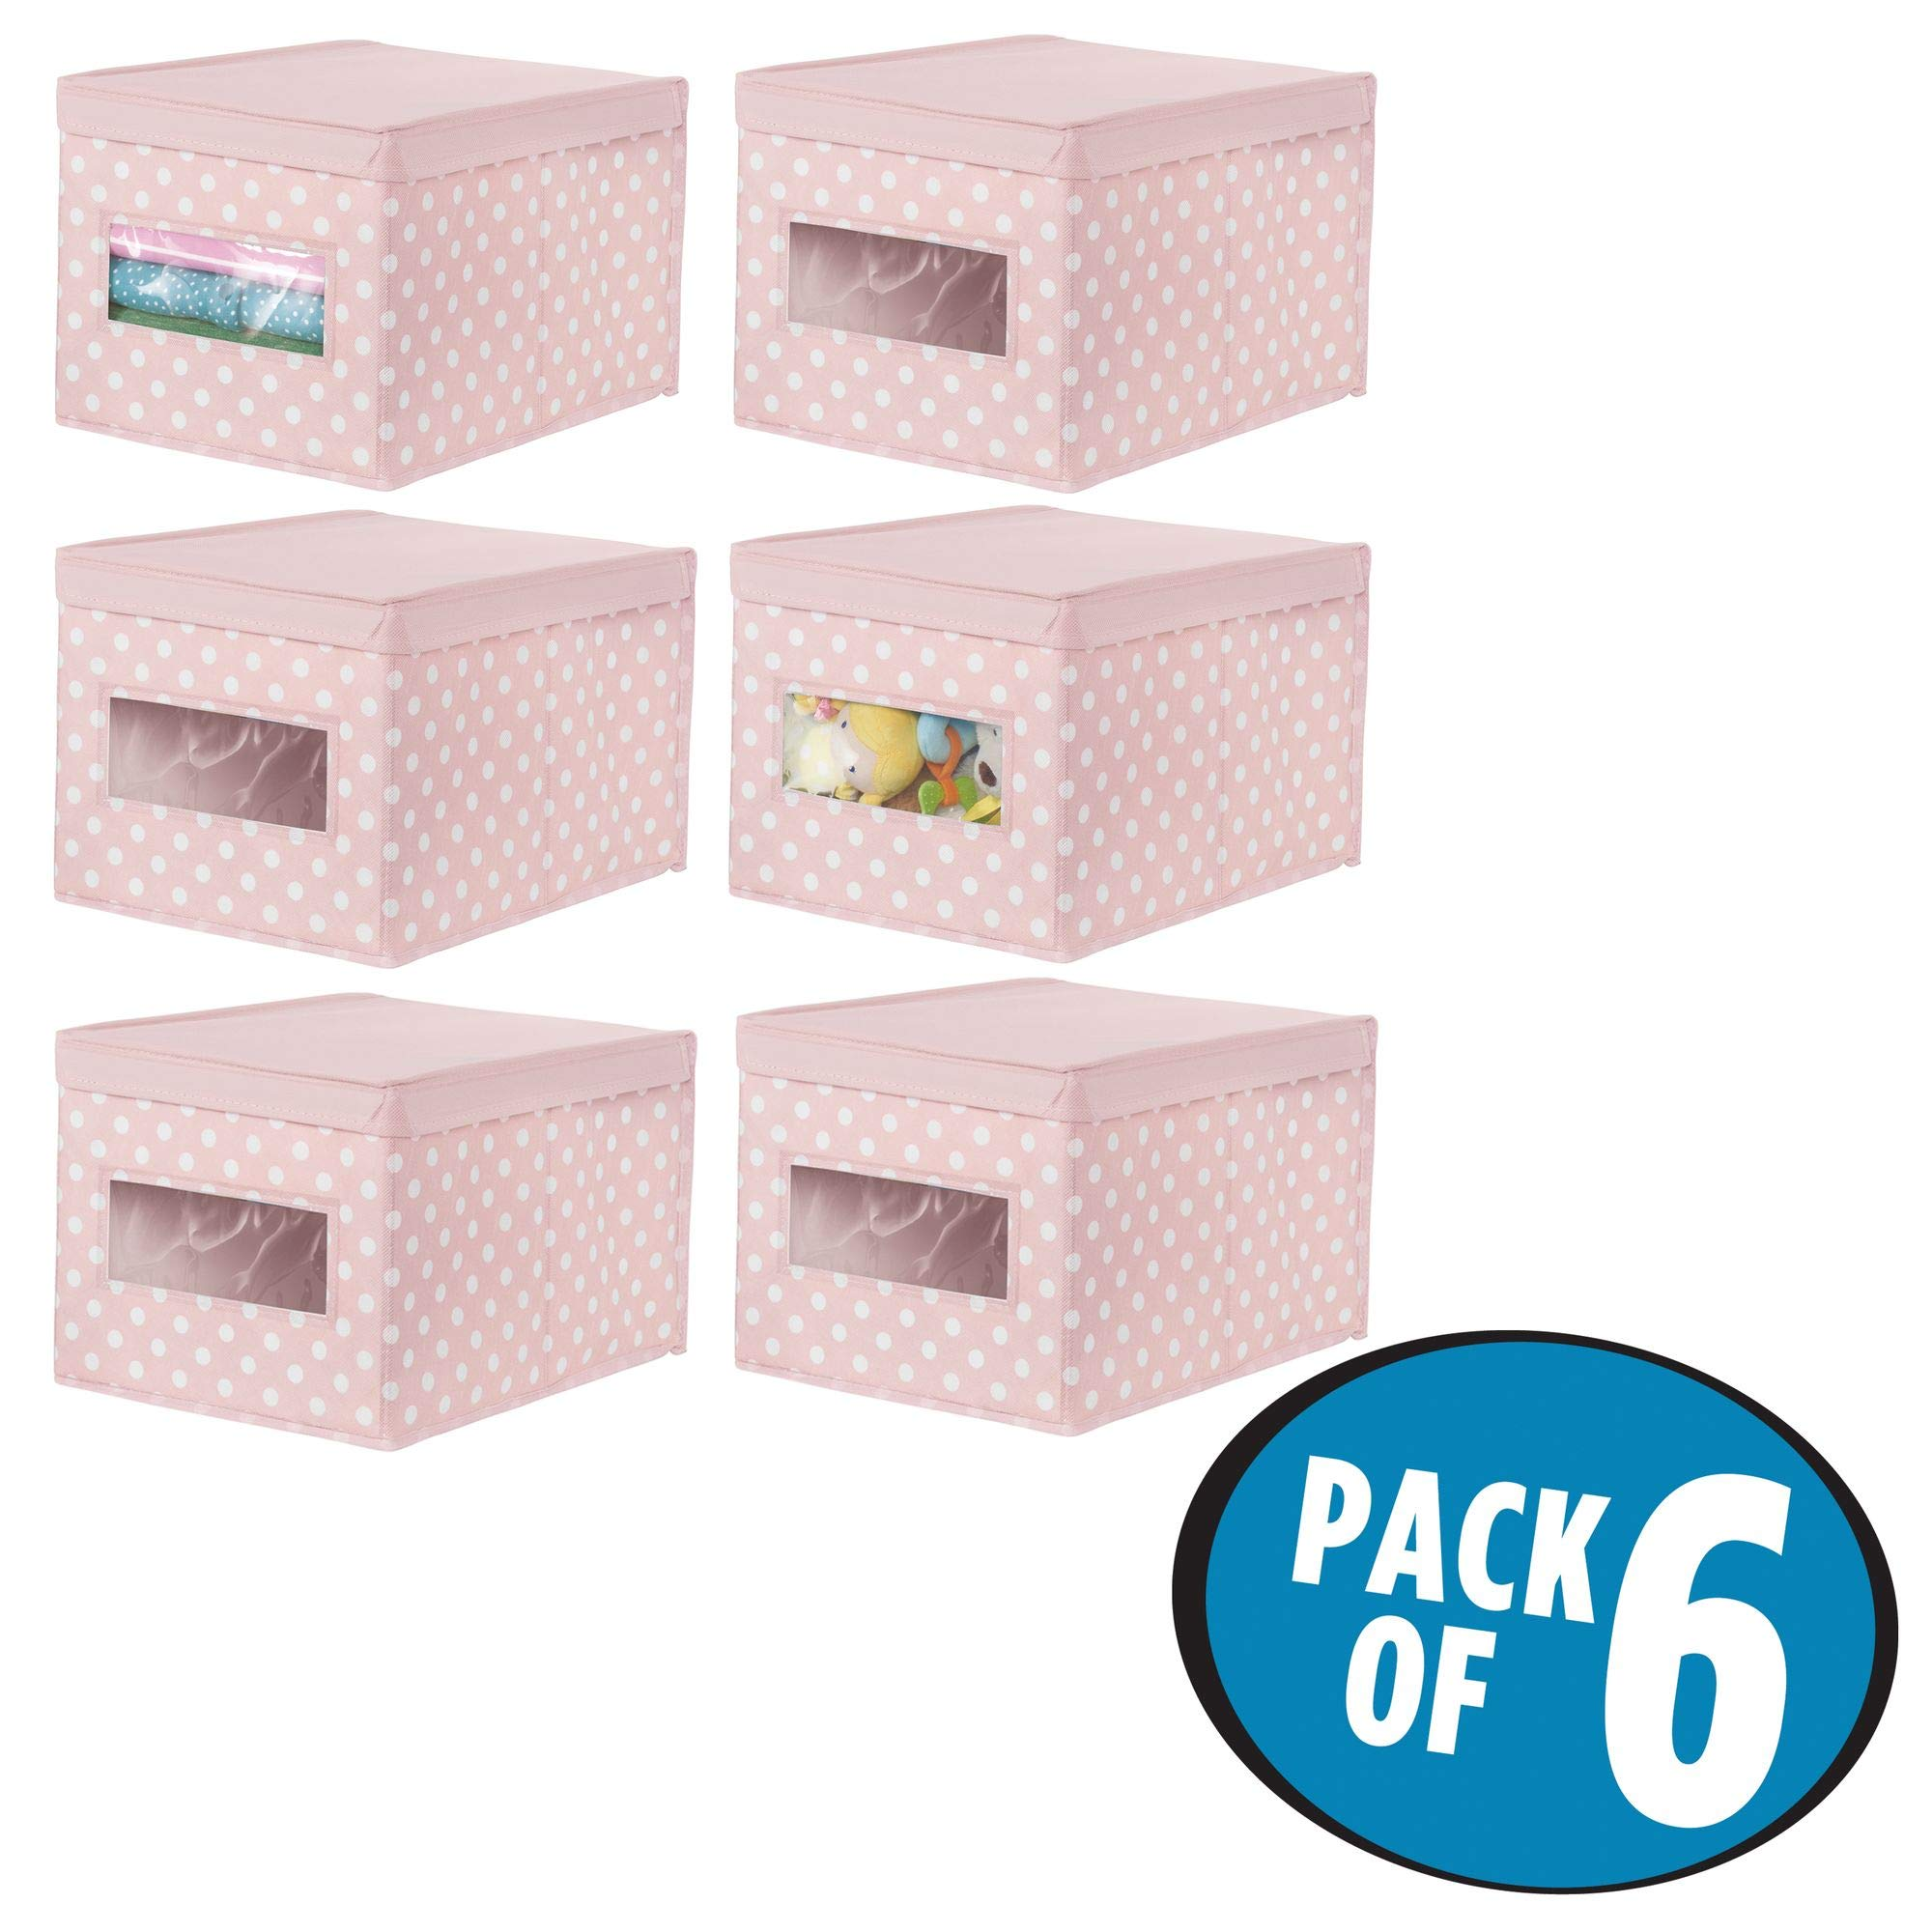 mDesign Soft Stackable Fabric Closet Storage Organizer Holder Box - Clear Window, Attached Hinged Lid, for Child/Kids Girls Room, Nursery, Playroom - Polka Dot- Large, 6 Pack - Pink with White Dots